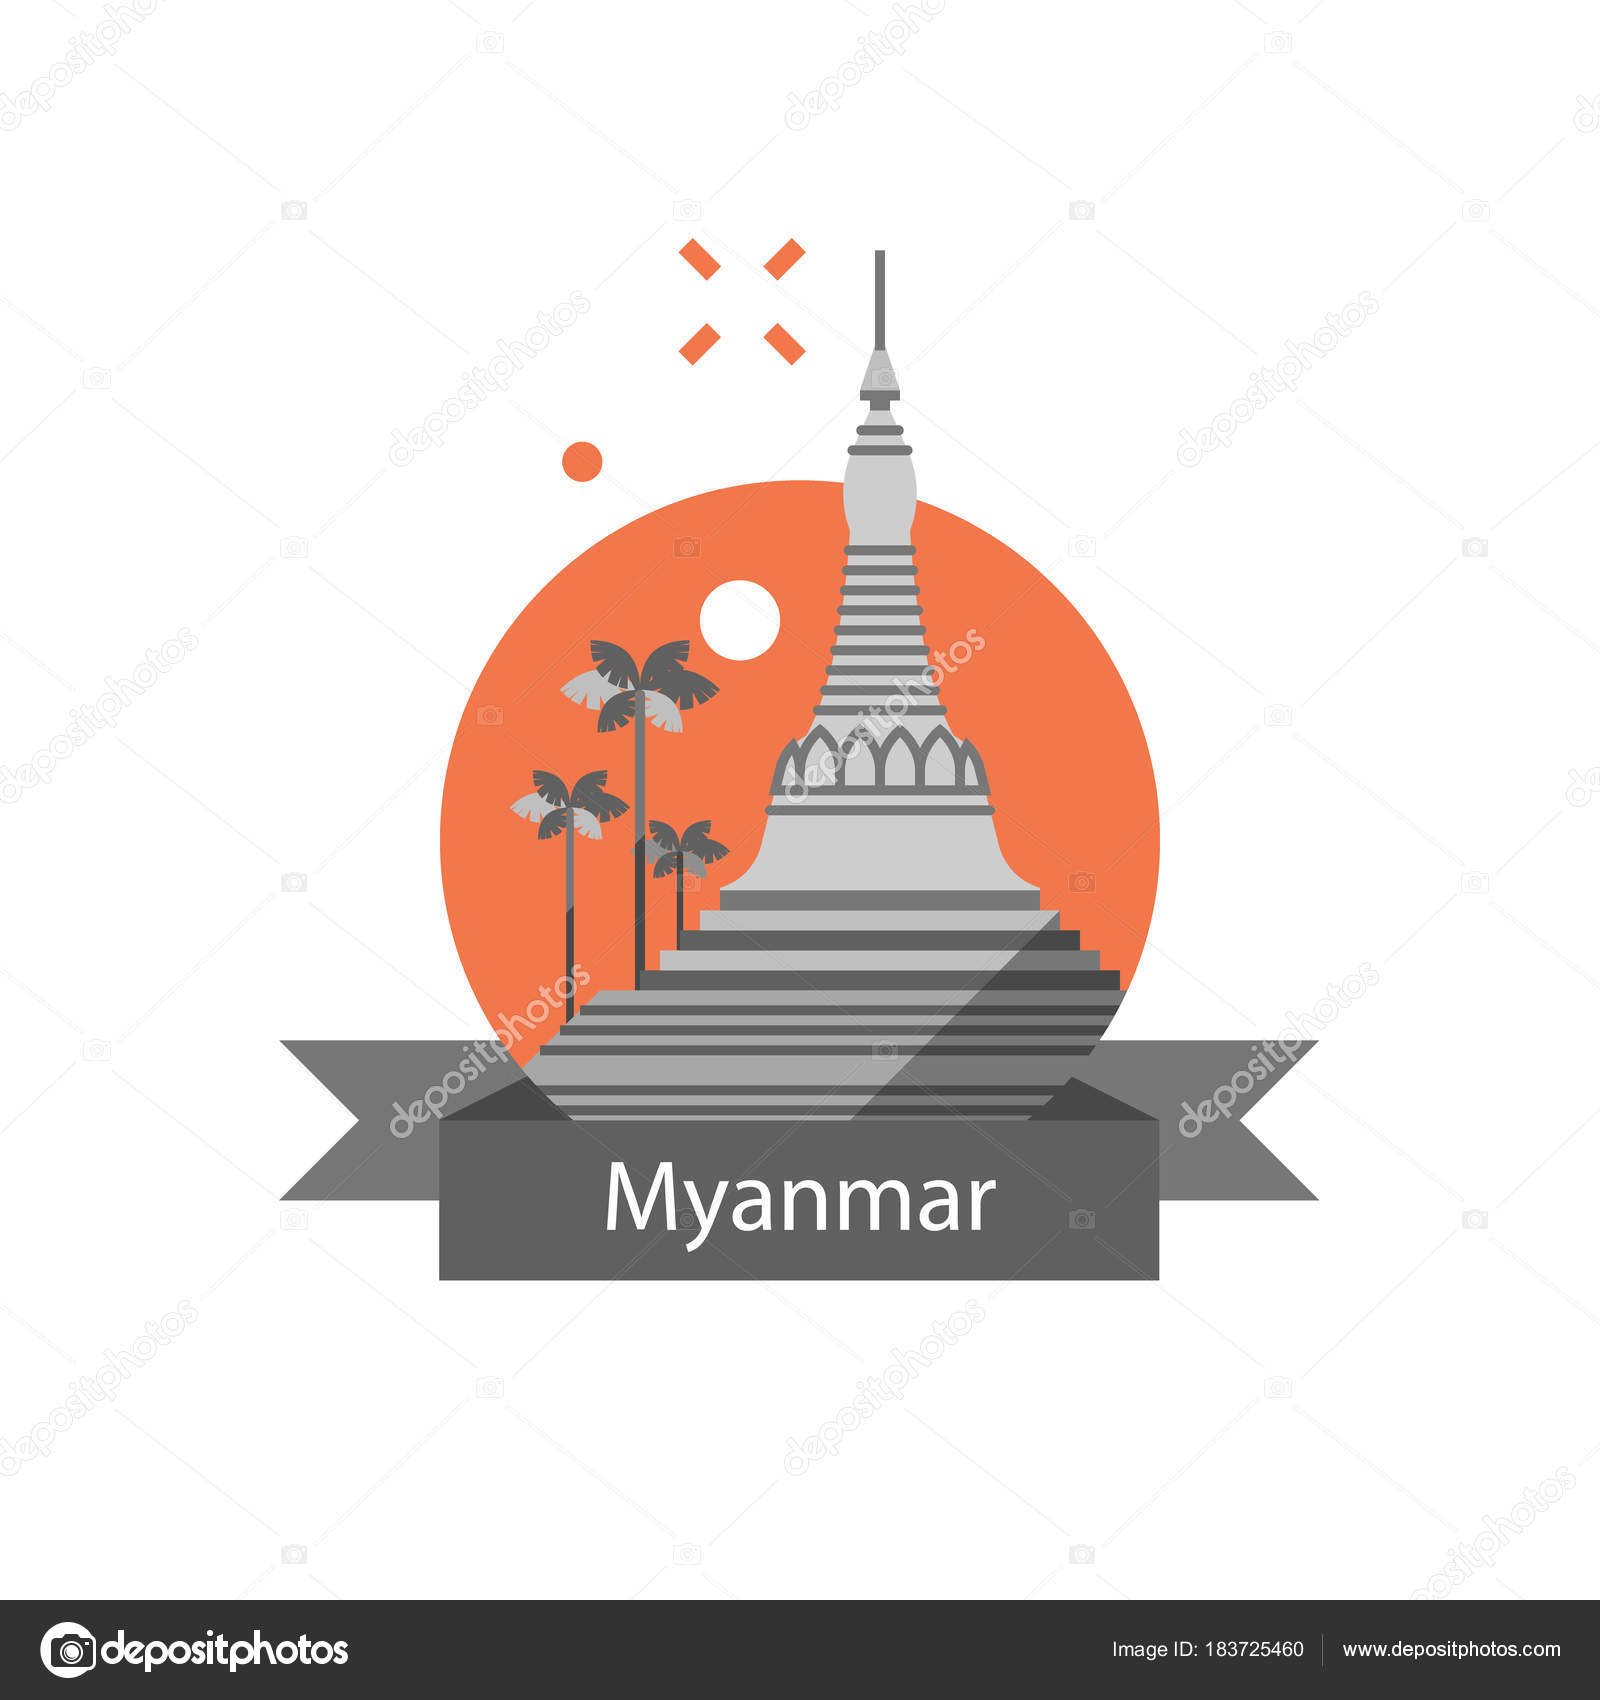 Yangon symbol shwedagon pagoda myanmar travel destination yangon symbol shwedagon pagoda myanmar travel destination culture and architecture famous landmark biocorpaavc Gallery